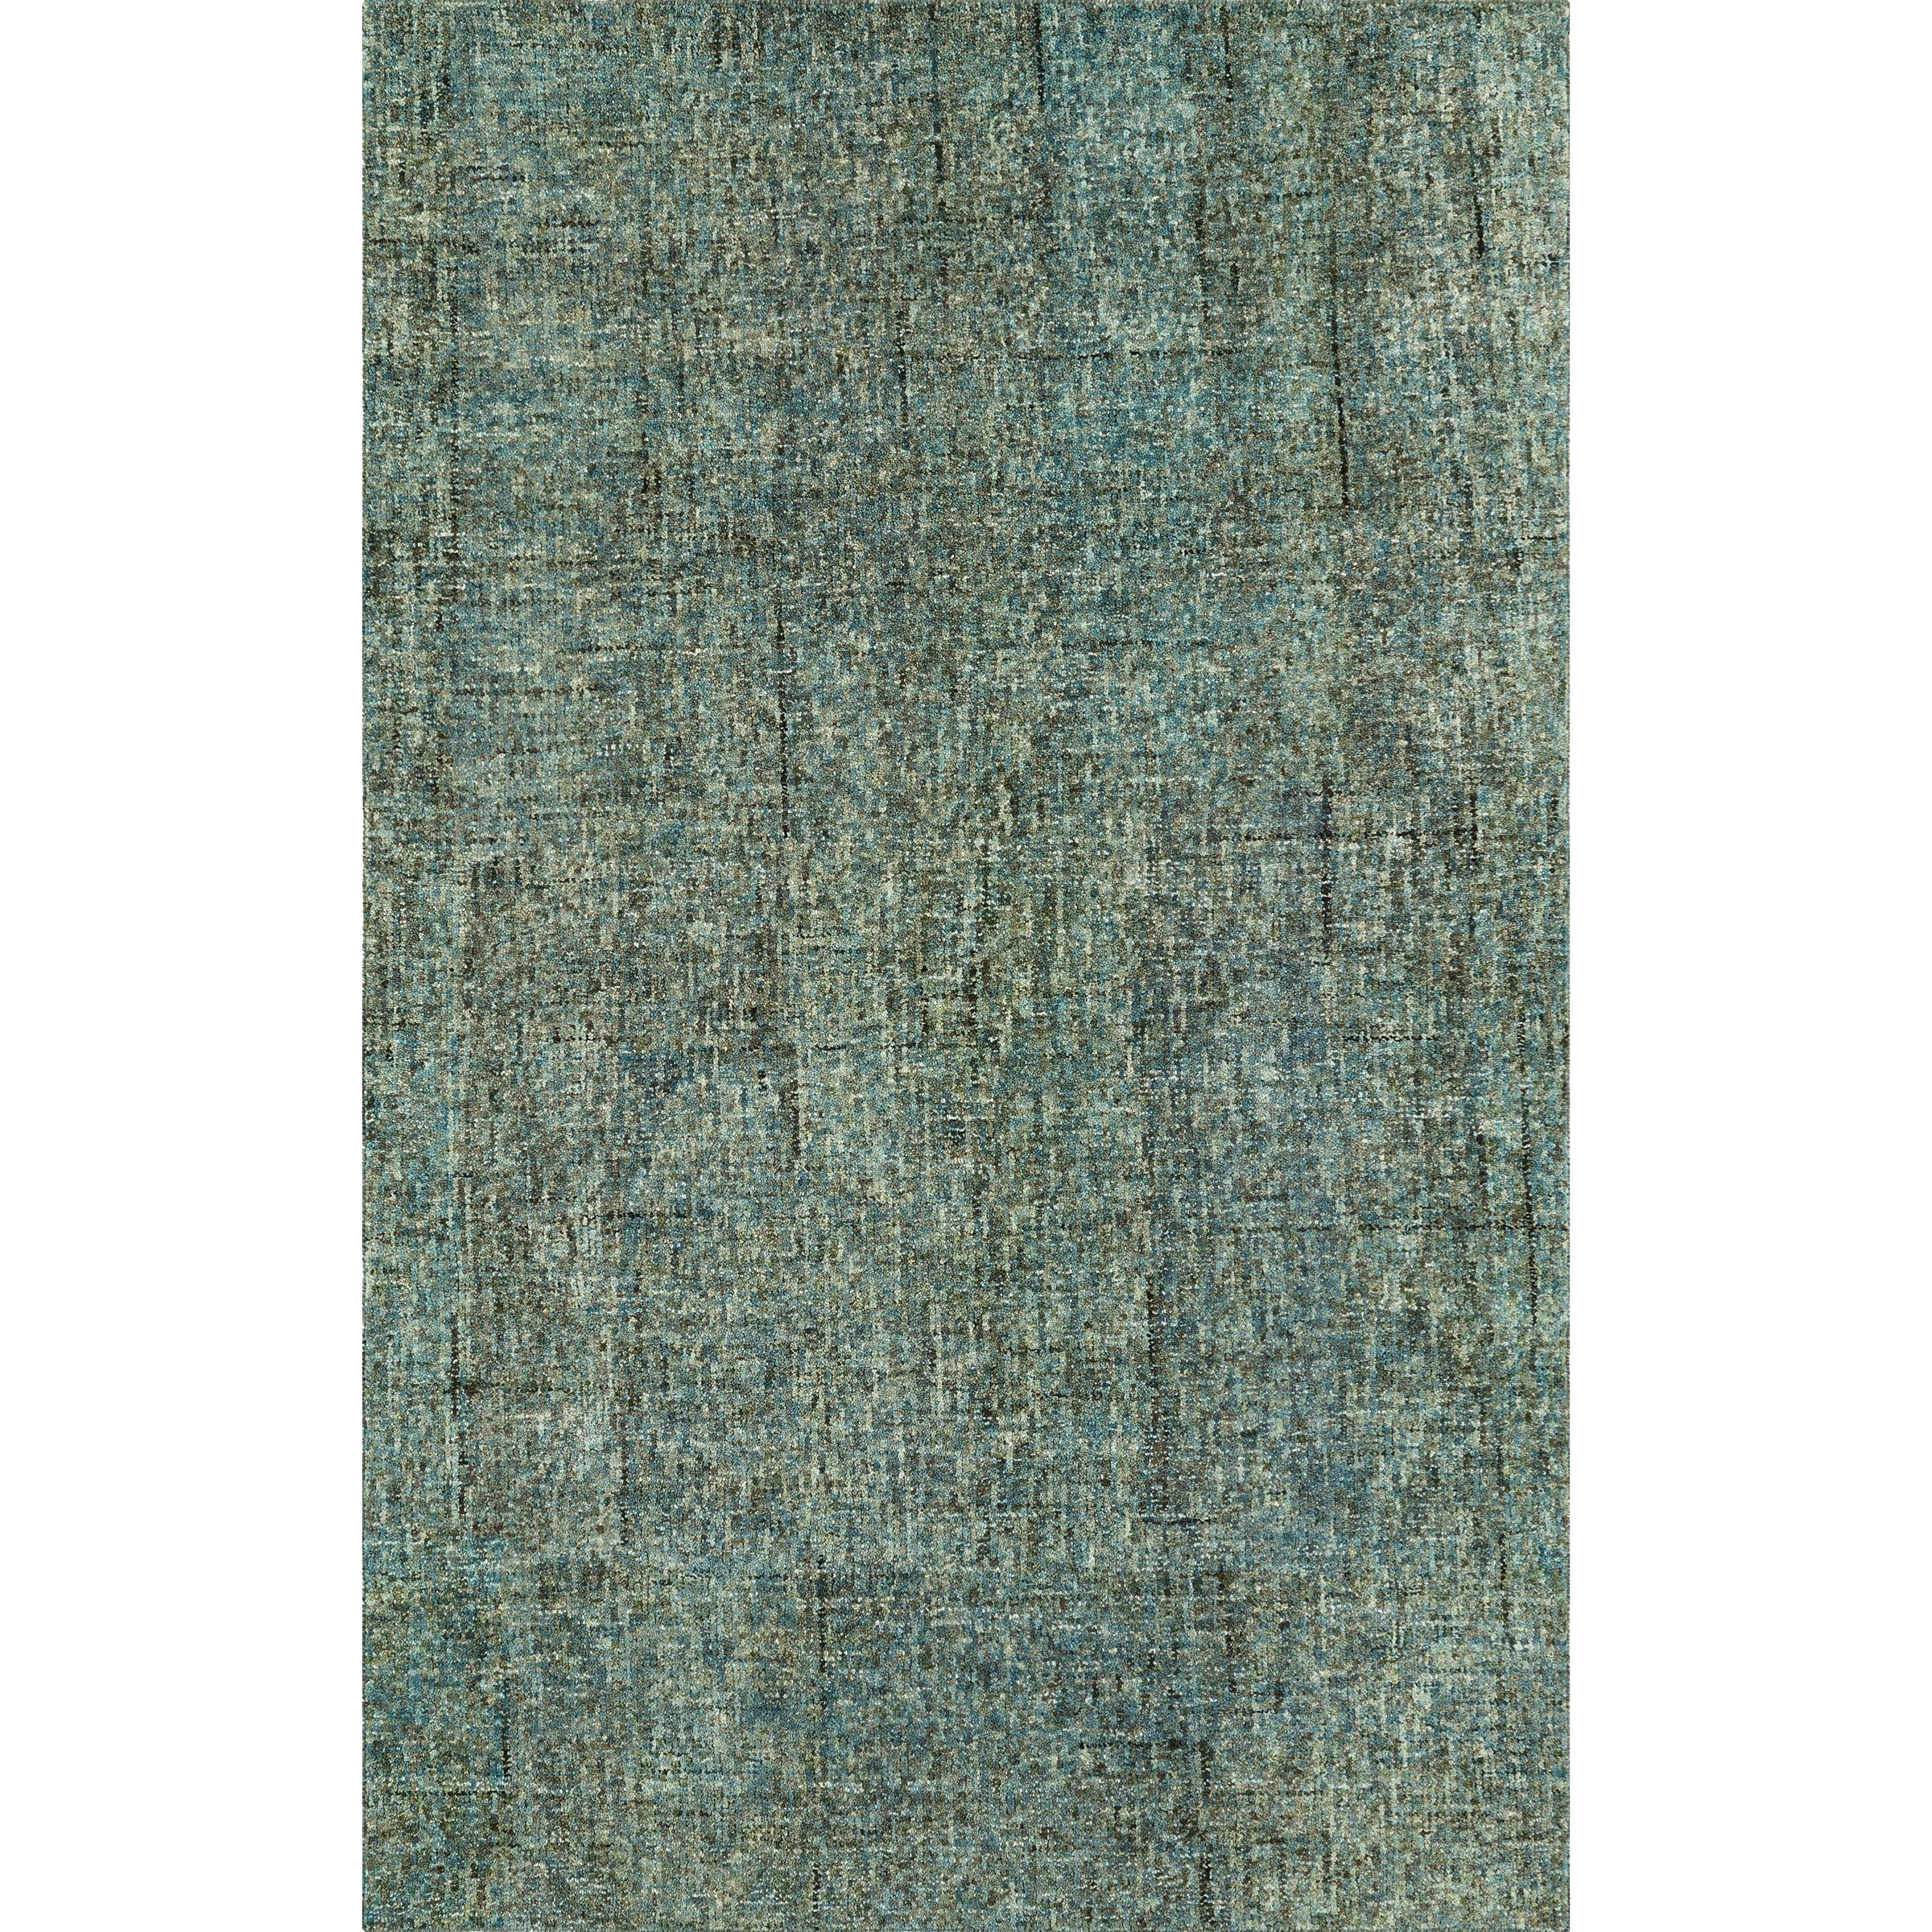 Calisa Seaglass 9'X13' Rug by Dalyn at Factory Direct Furniture